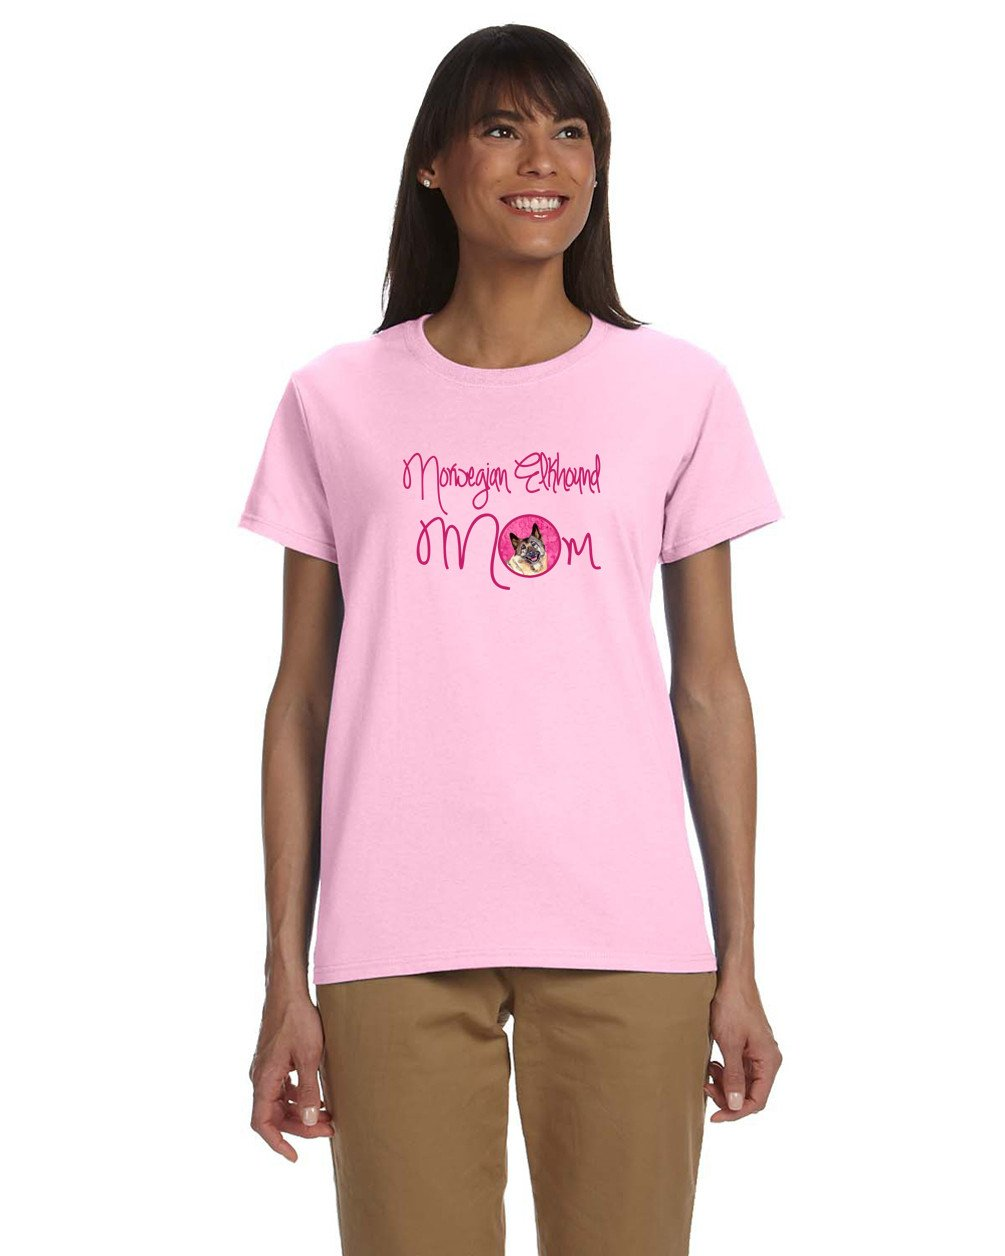 Pink Norwegian Elkhound Mom T-shirt Ladies Cut Short Sleeve Medium by Caroline's Treasures